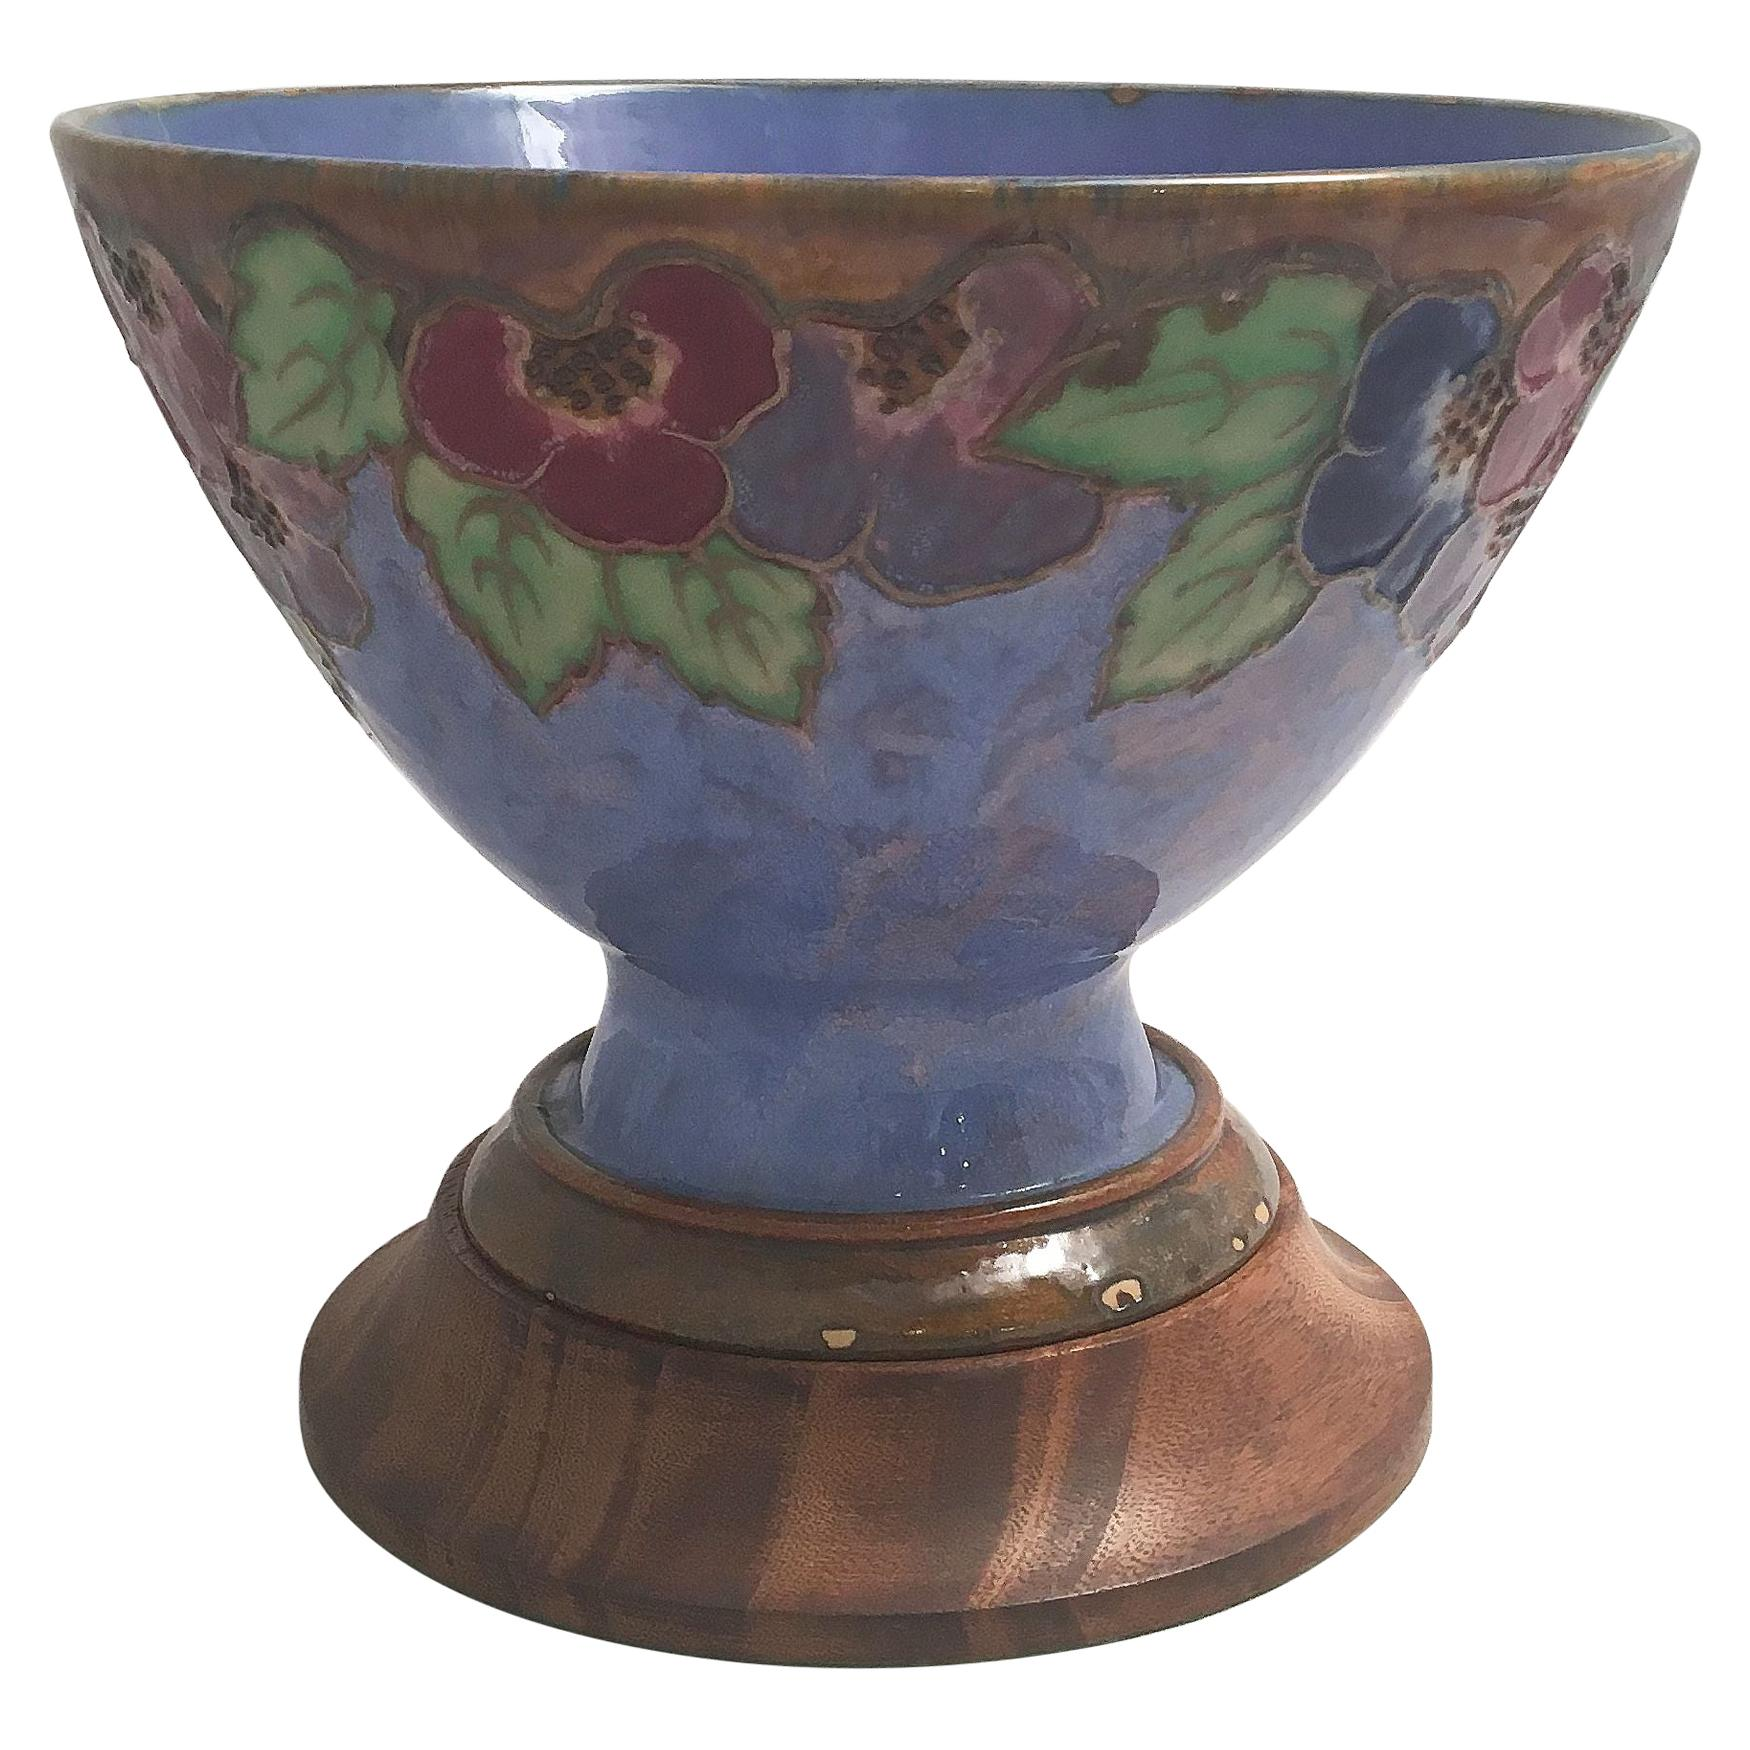 Royal Doulton Bowl and Vase from the Arts and Crafts Period